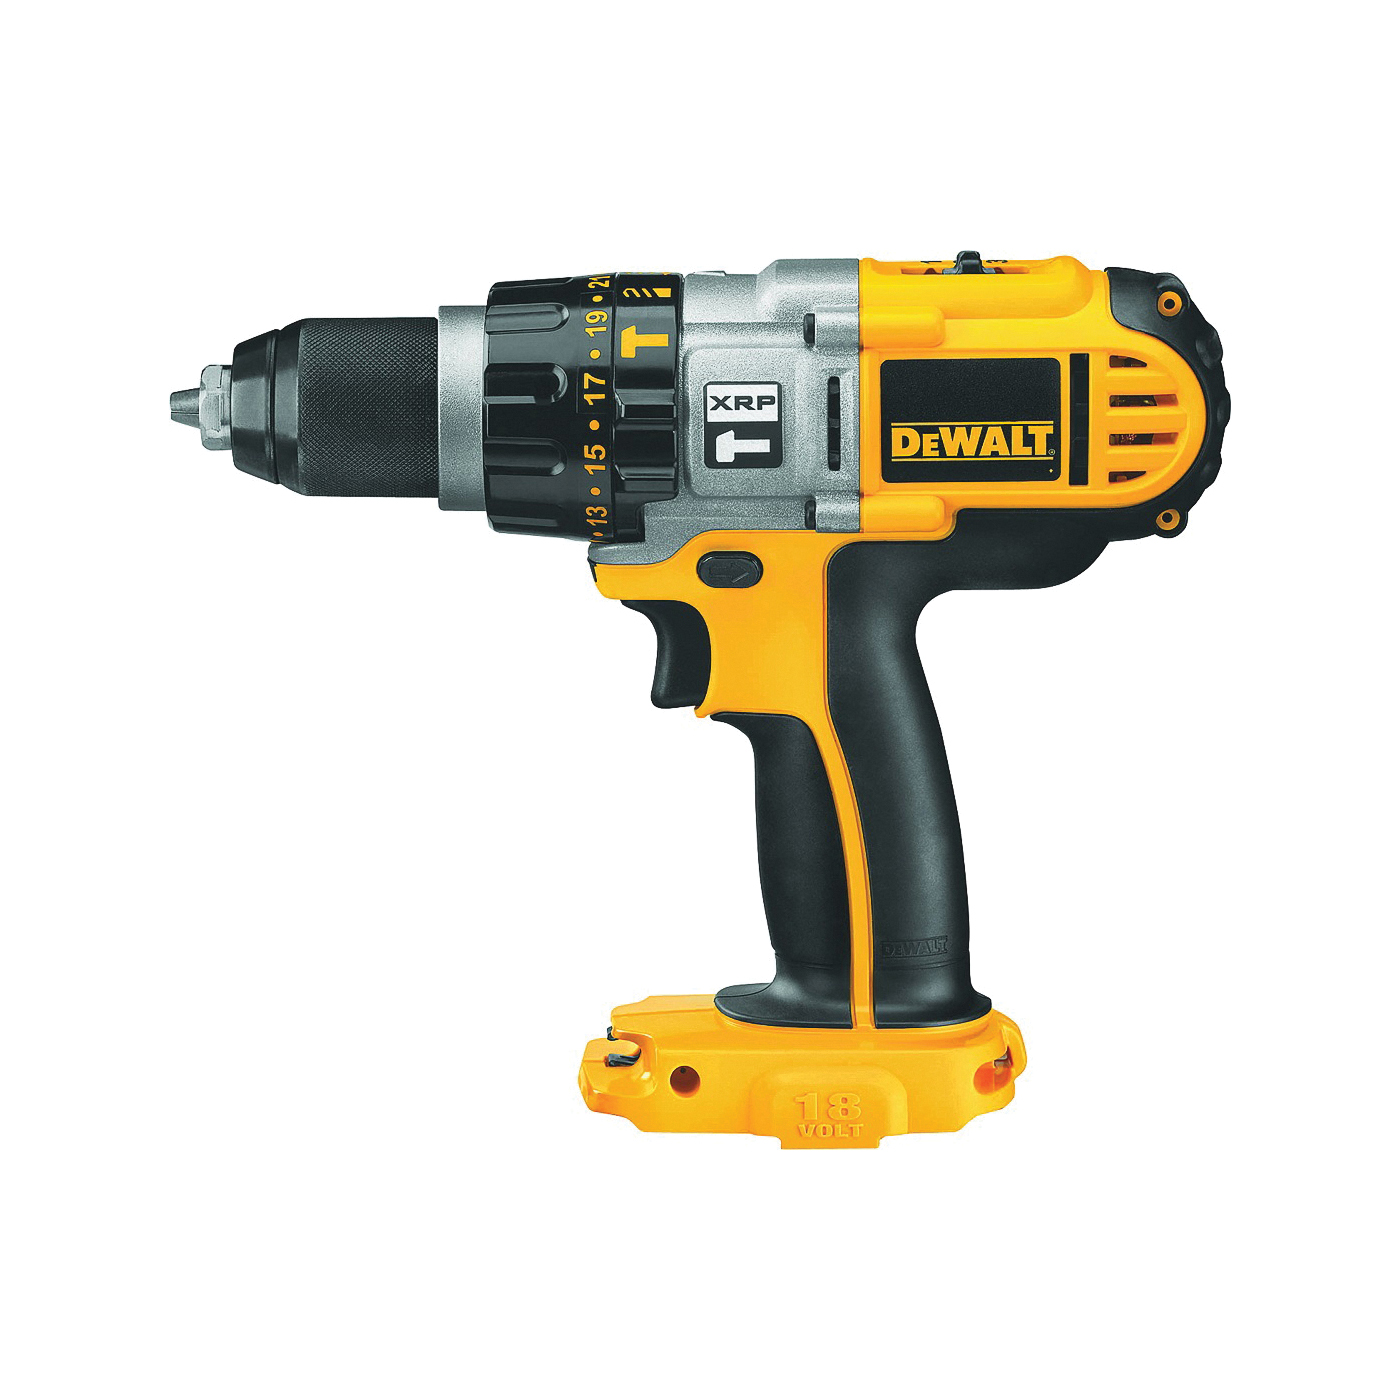 Picture of DeWALT DCD950B Hammer Drill/Driver, Bare Tool, 18 V Battery, 2.4 Ah, 1/2 in Chuck, Ratcheting Chuck